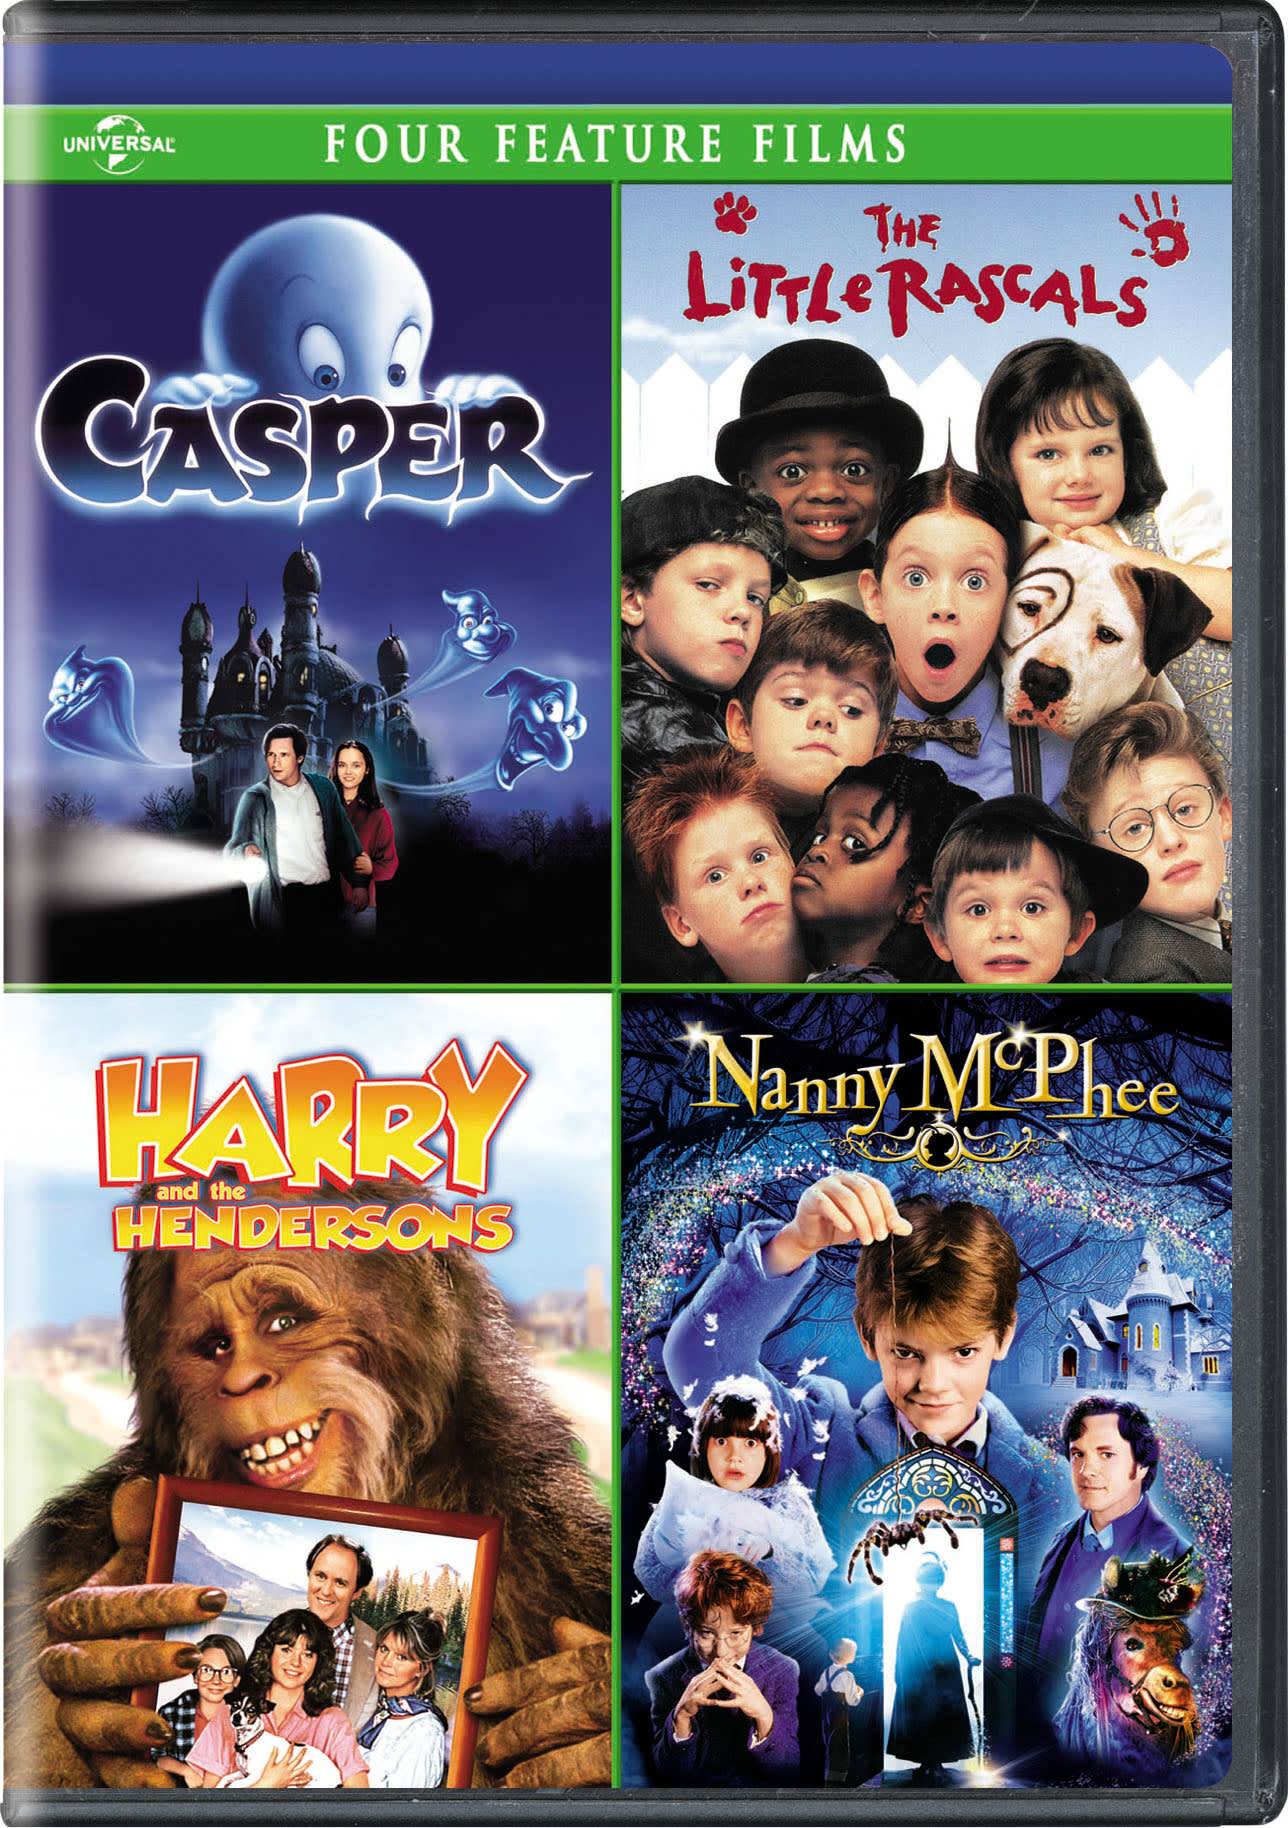 Casper/The Little Rascals/Harry and the Hendersons/Nanny McPhee (Box Set) [DVD]